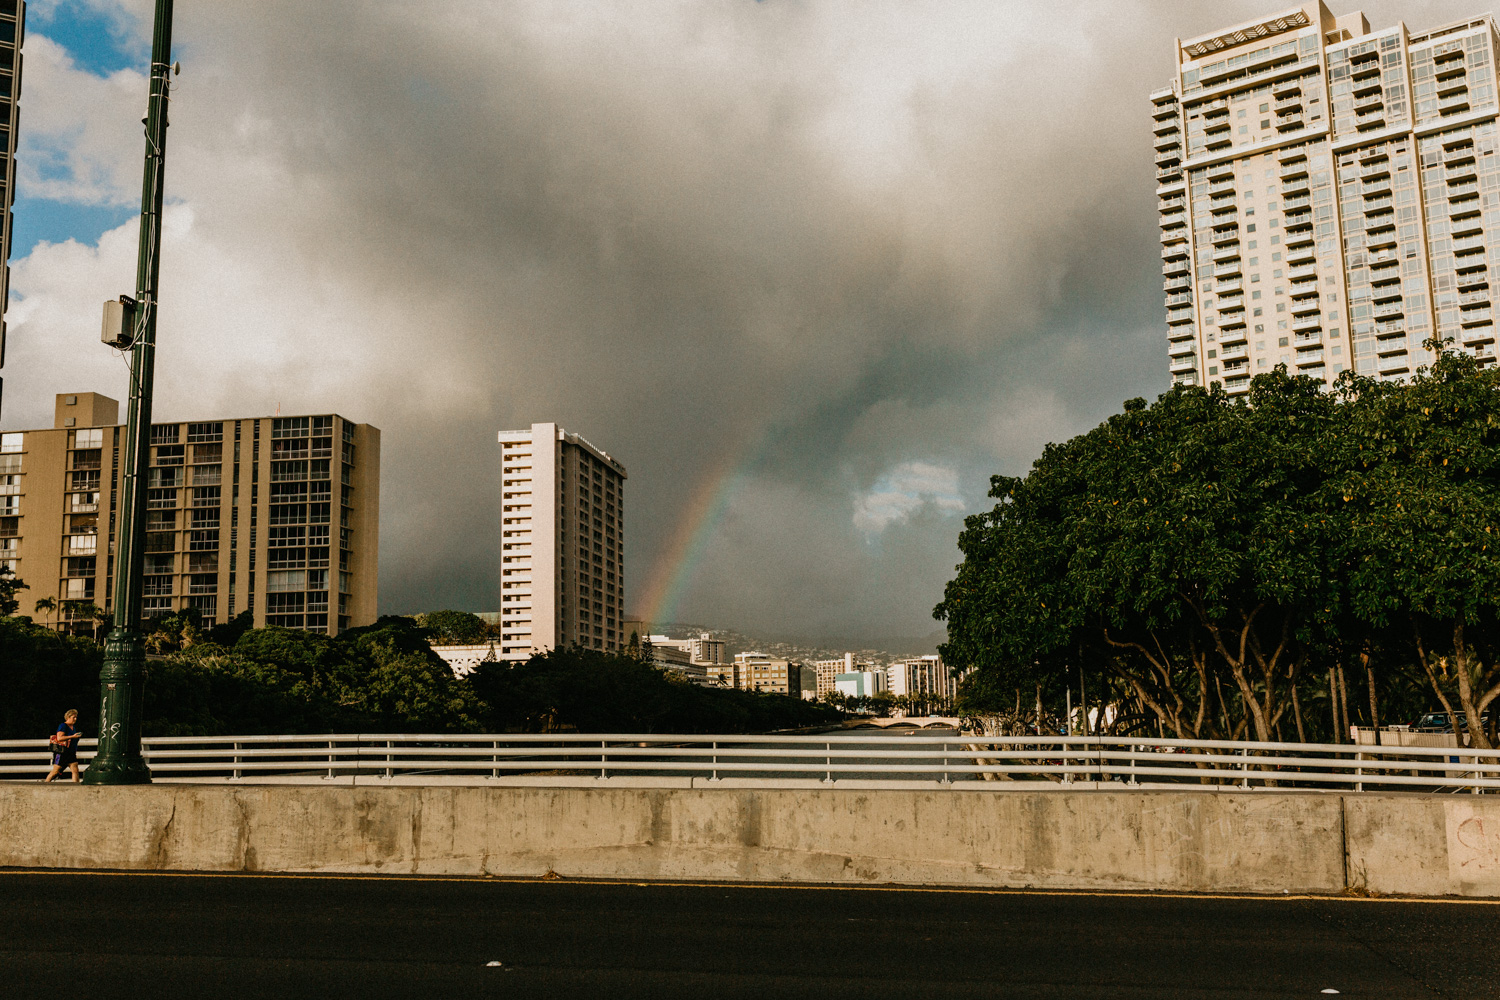 Seriously I expected nothing but rainbow while in Hawaii. You can't blame me as rainbow illustration and pictures are everywhere!